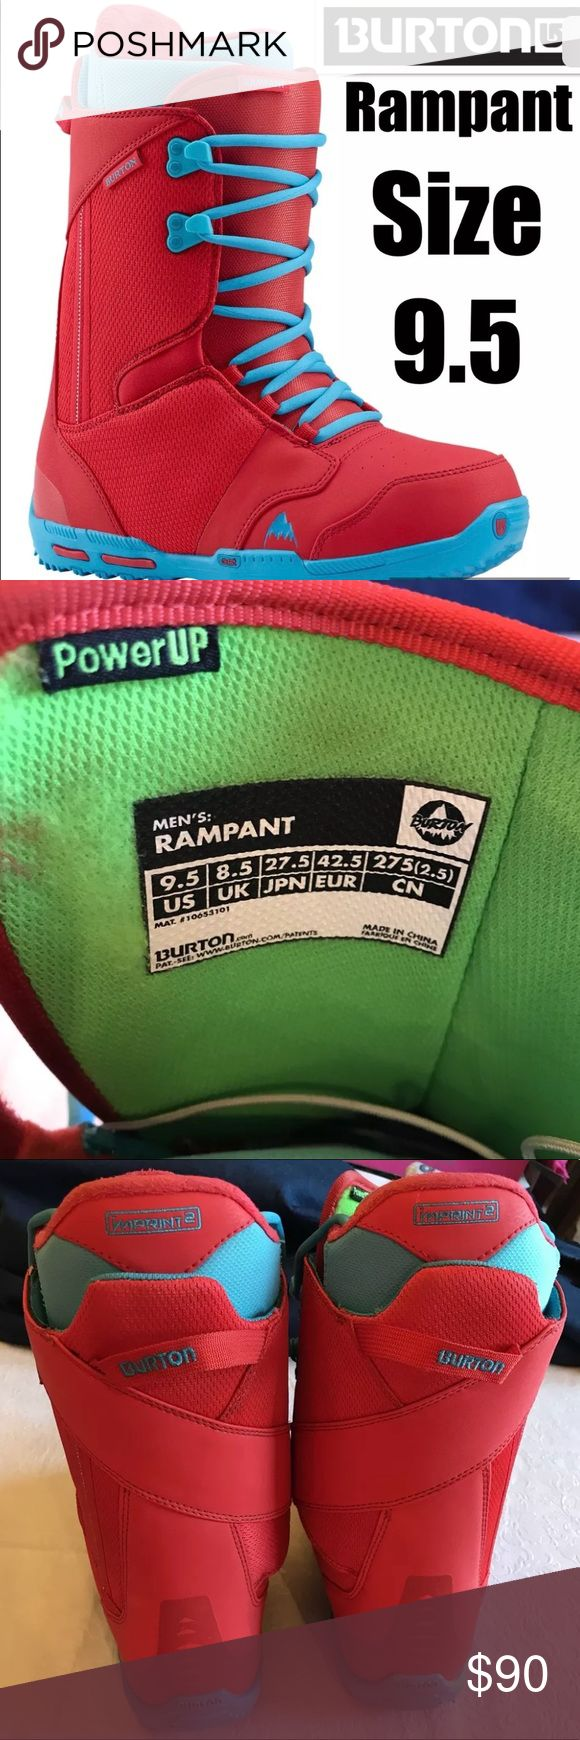 Burton Men's Rampant Snowboard Boots Size 9.5 Great Condition. Please see the last picture for the tiny bit of wear on the one boot. Burton Shoes Rain & Snow Boots